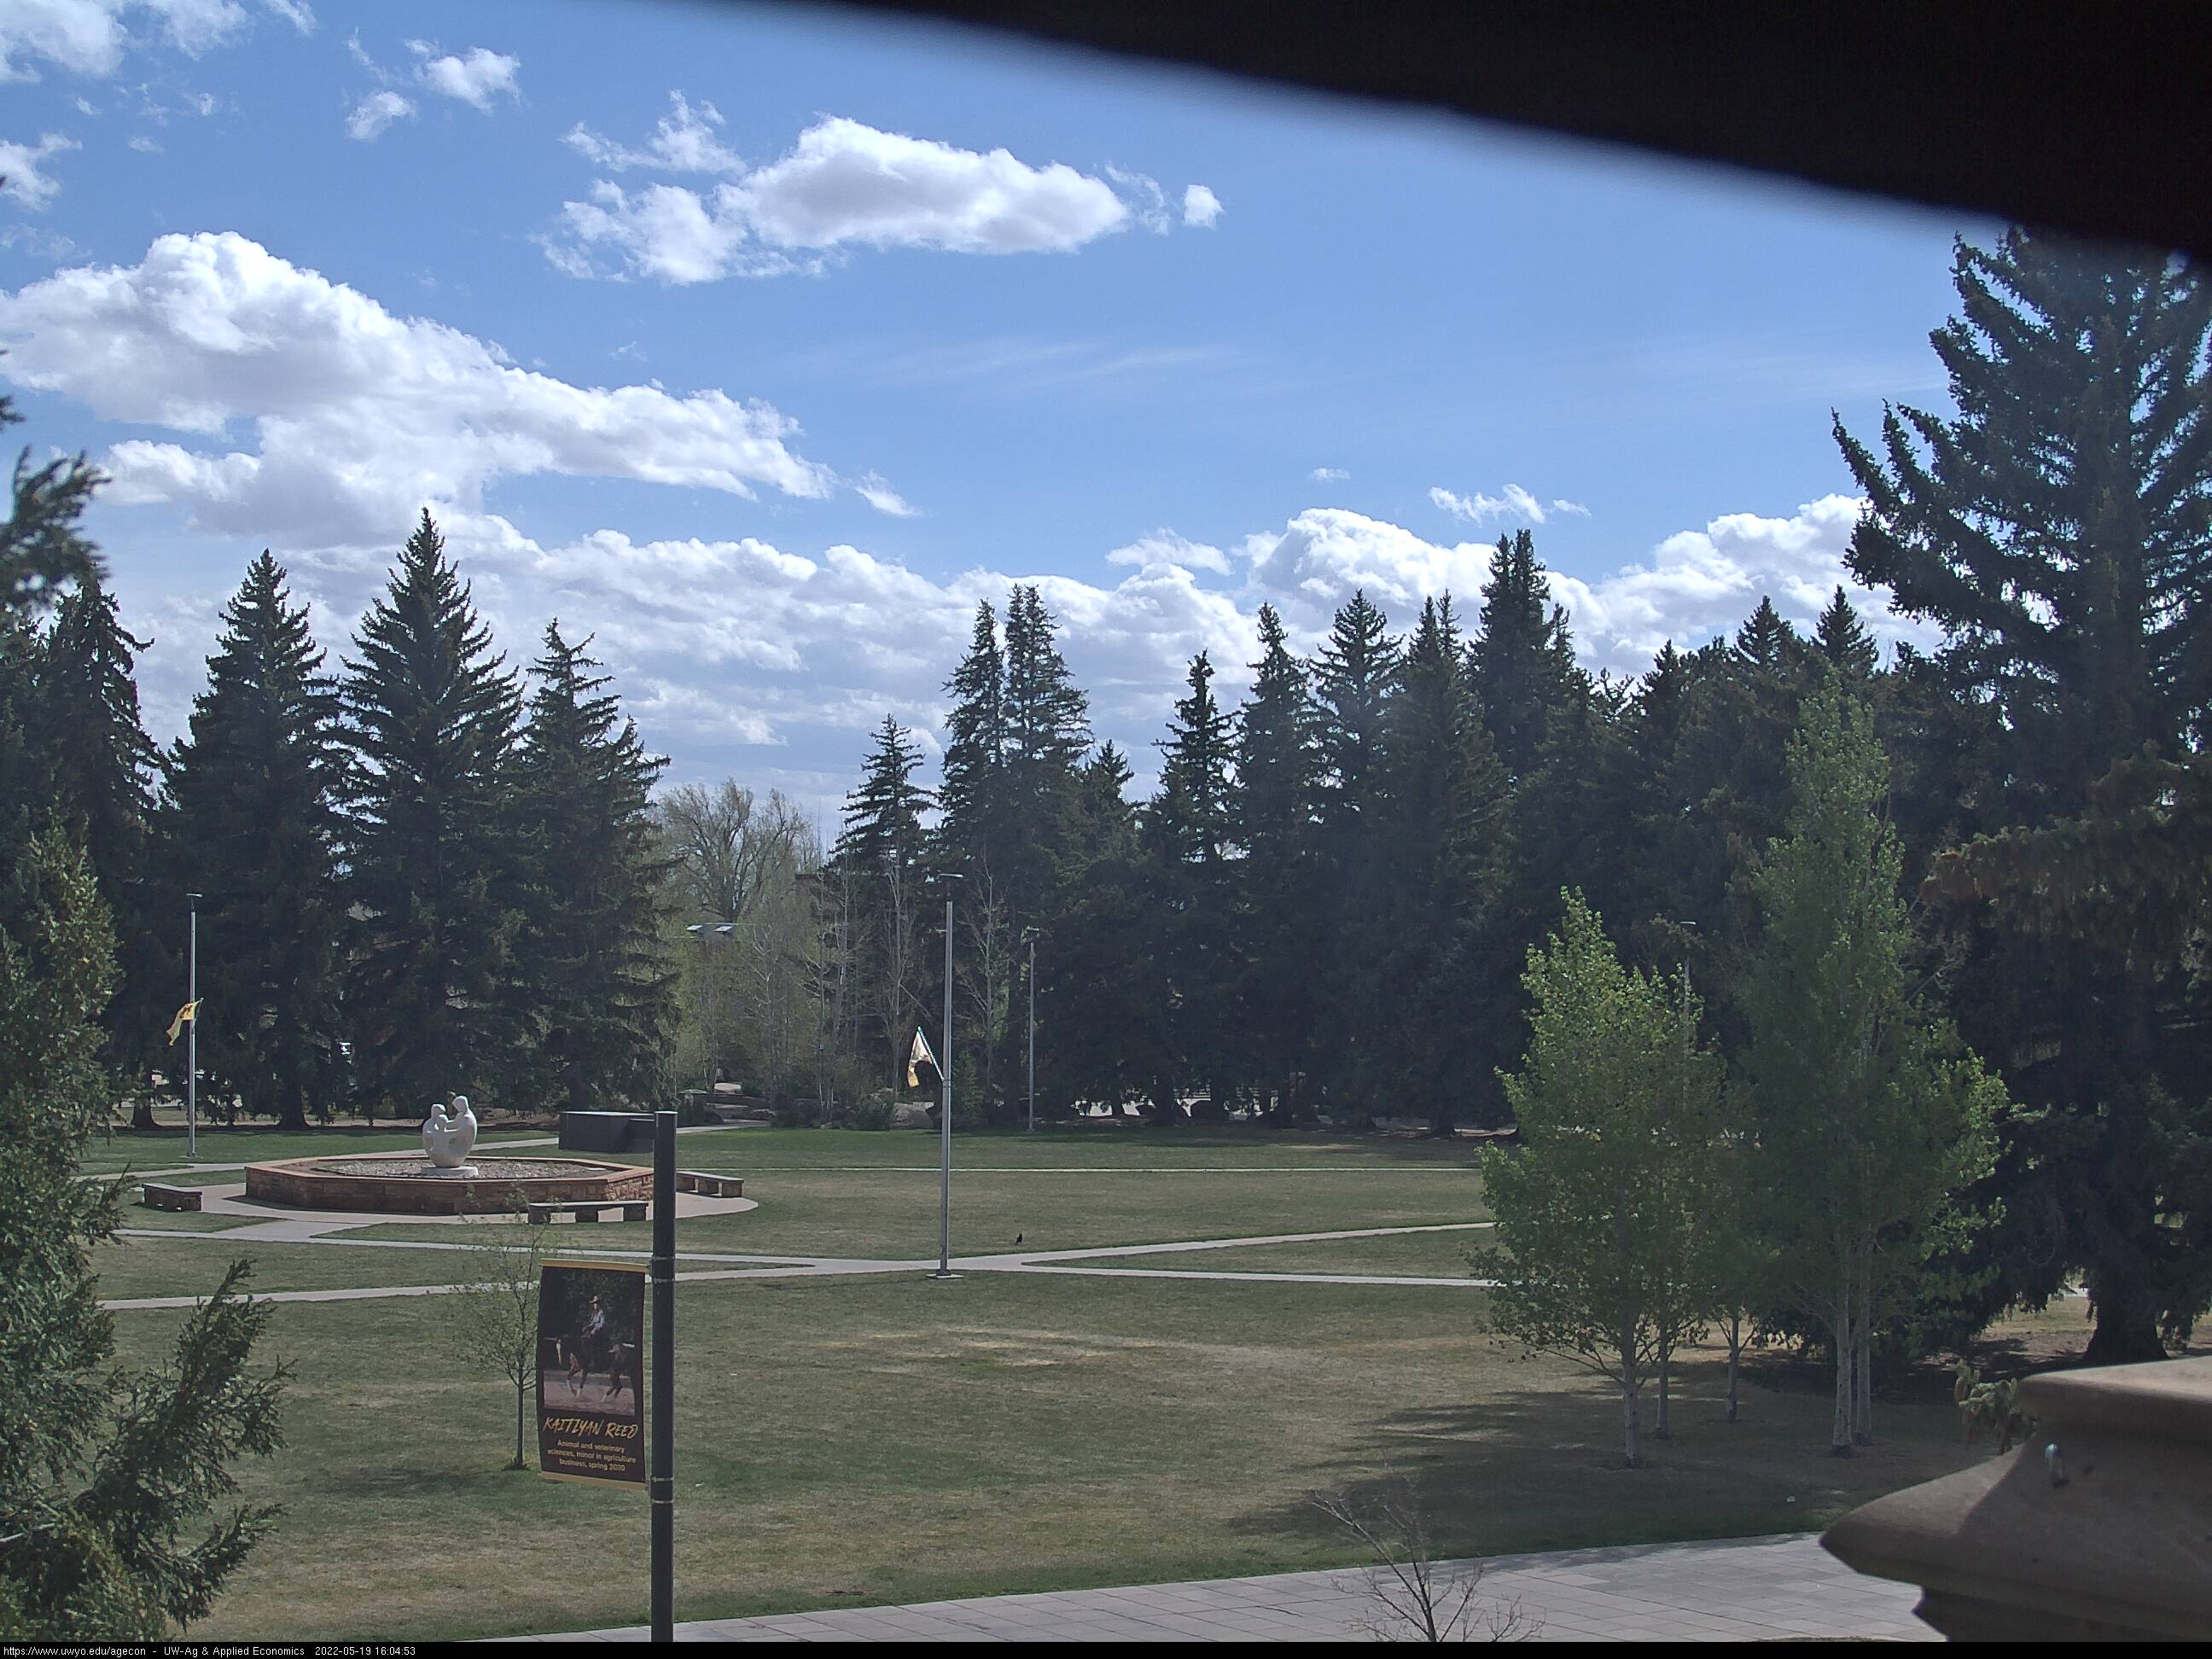 Laramie - Pasture Cam. Department of Agricultural and Applied Economics. - Wyoming